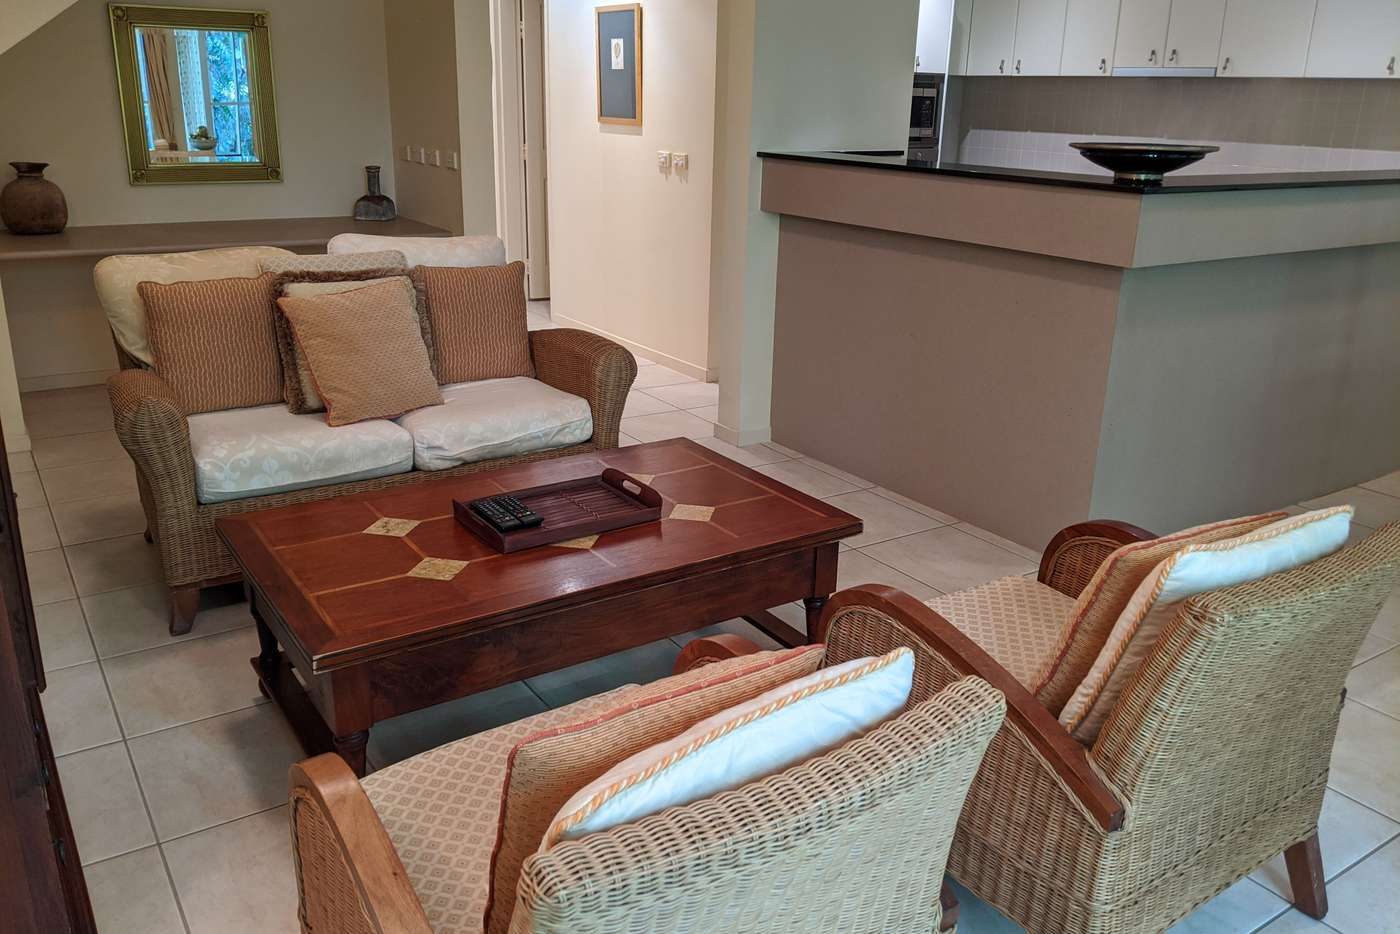 Seventh view of Homely townhouse listing, 19/24-70 Nautilus Street, Port Douglas QLD 4877